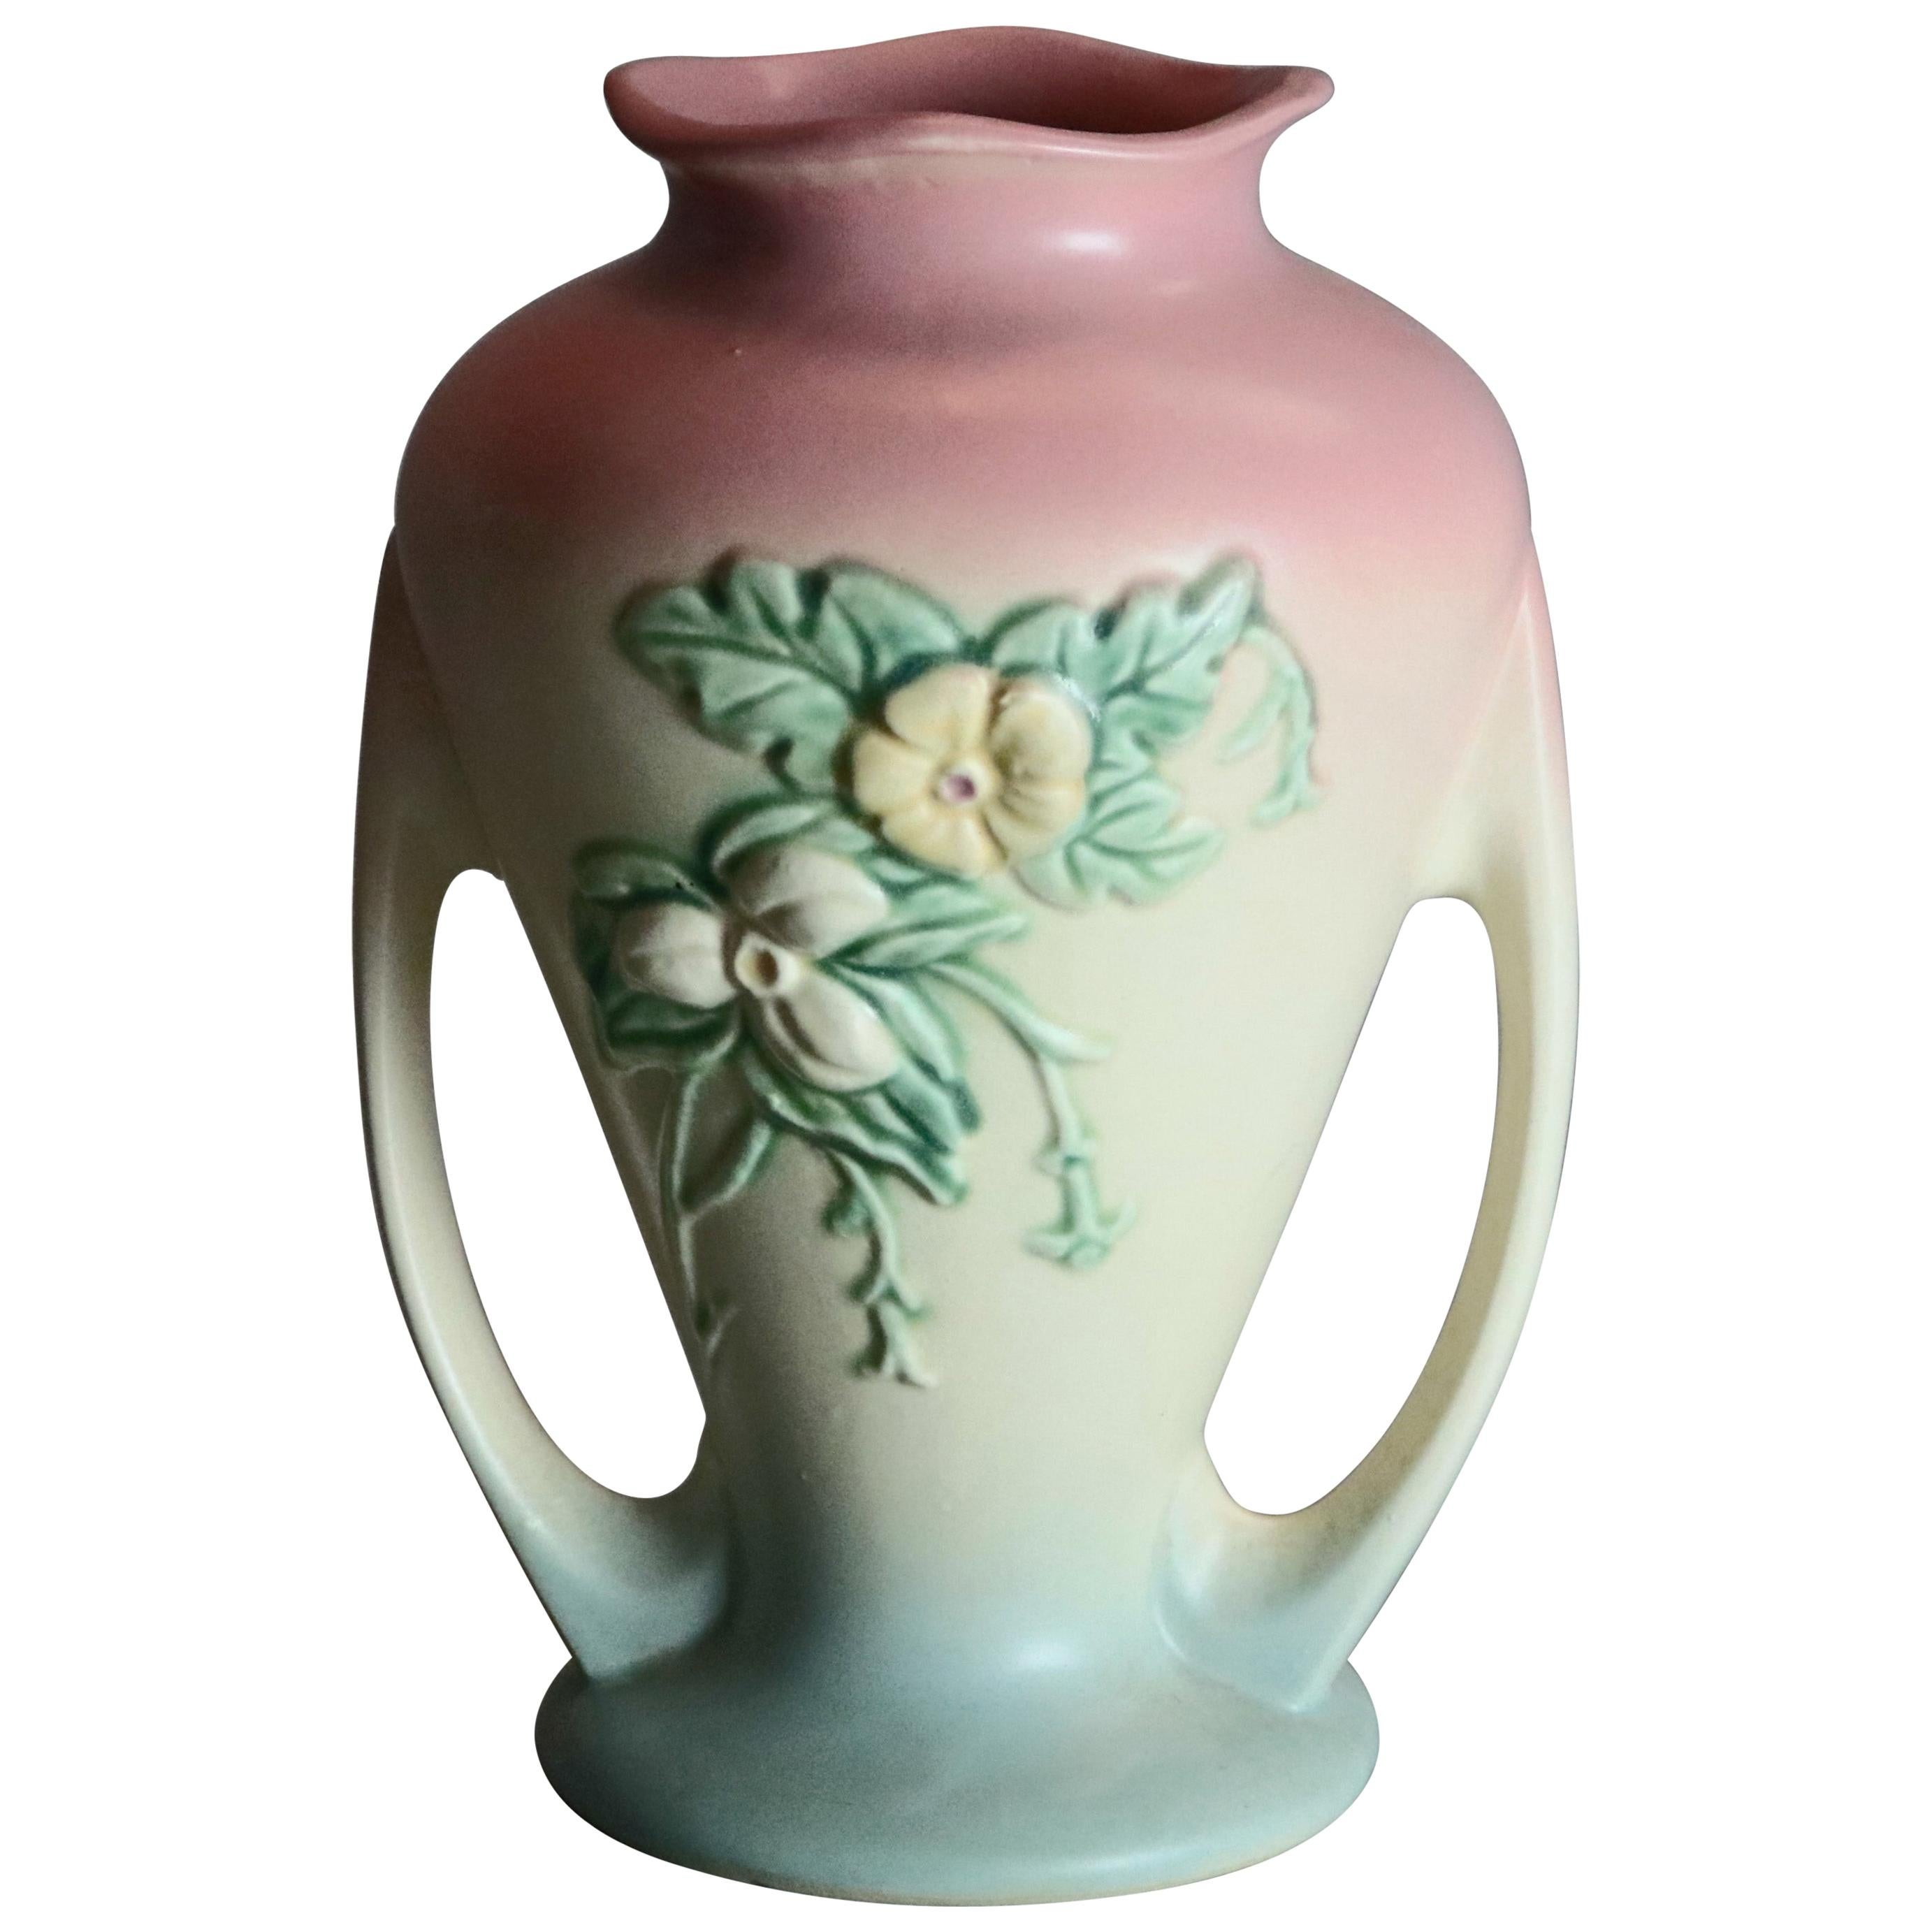 Vintage Hull Art Pottery Double Handled Floral Vase, Circa 1940